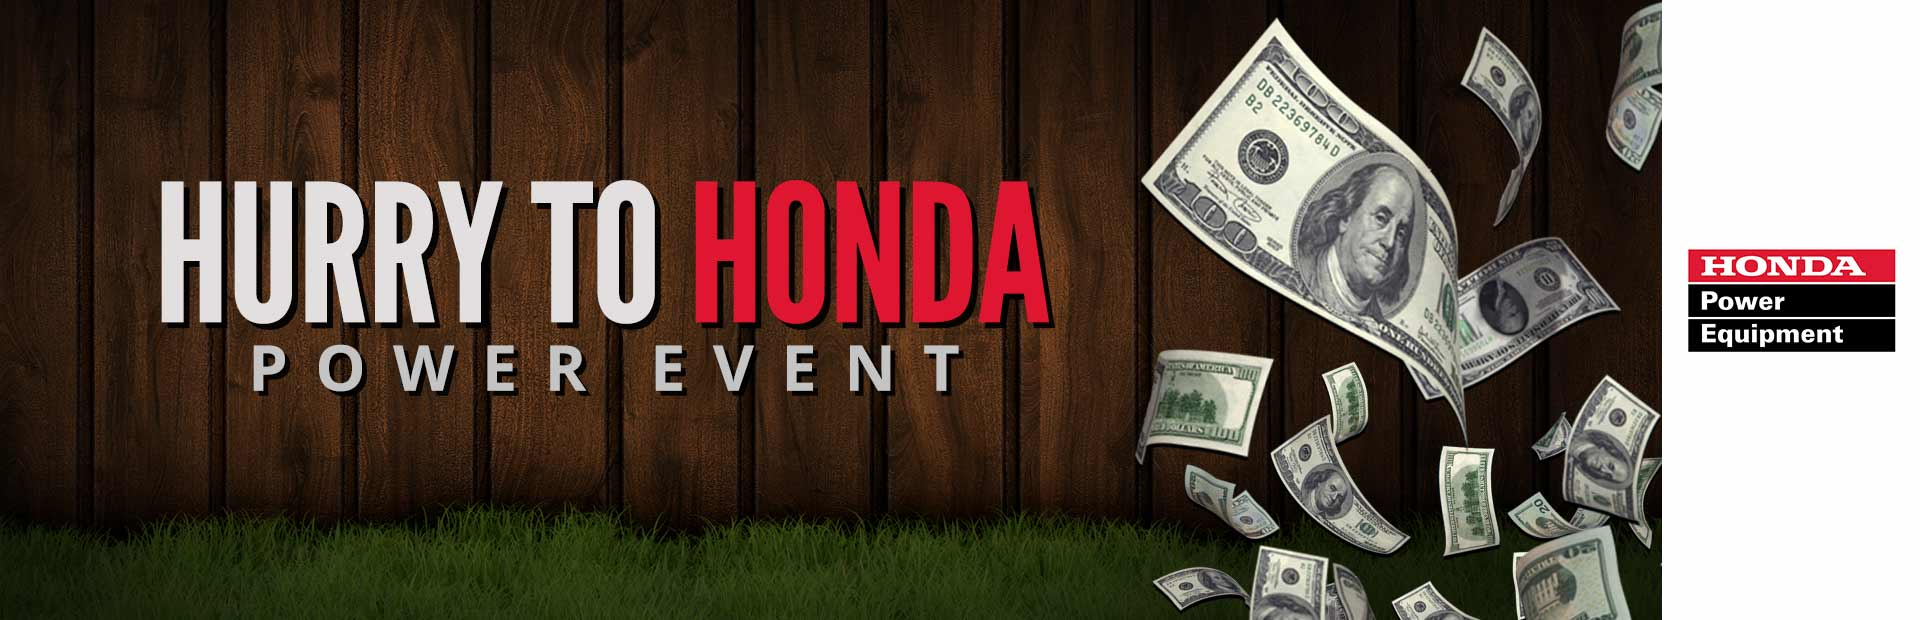 Honda Power Equipment: Hurry to Honda Power Event